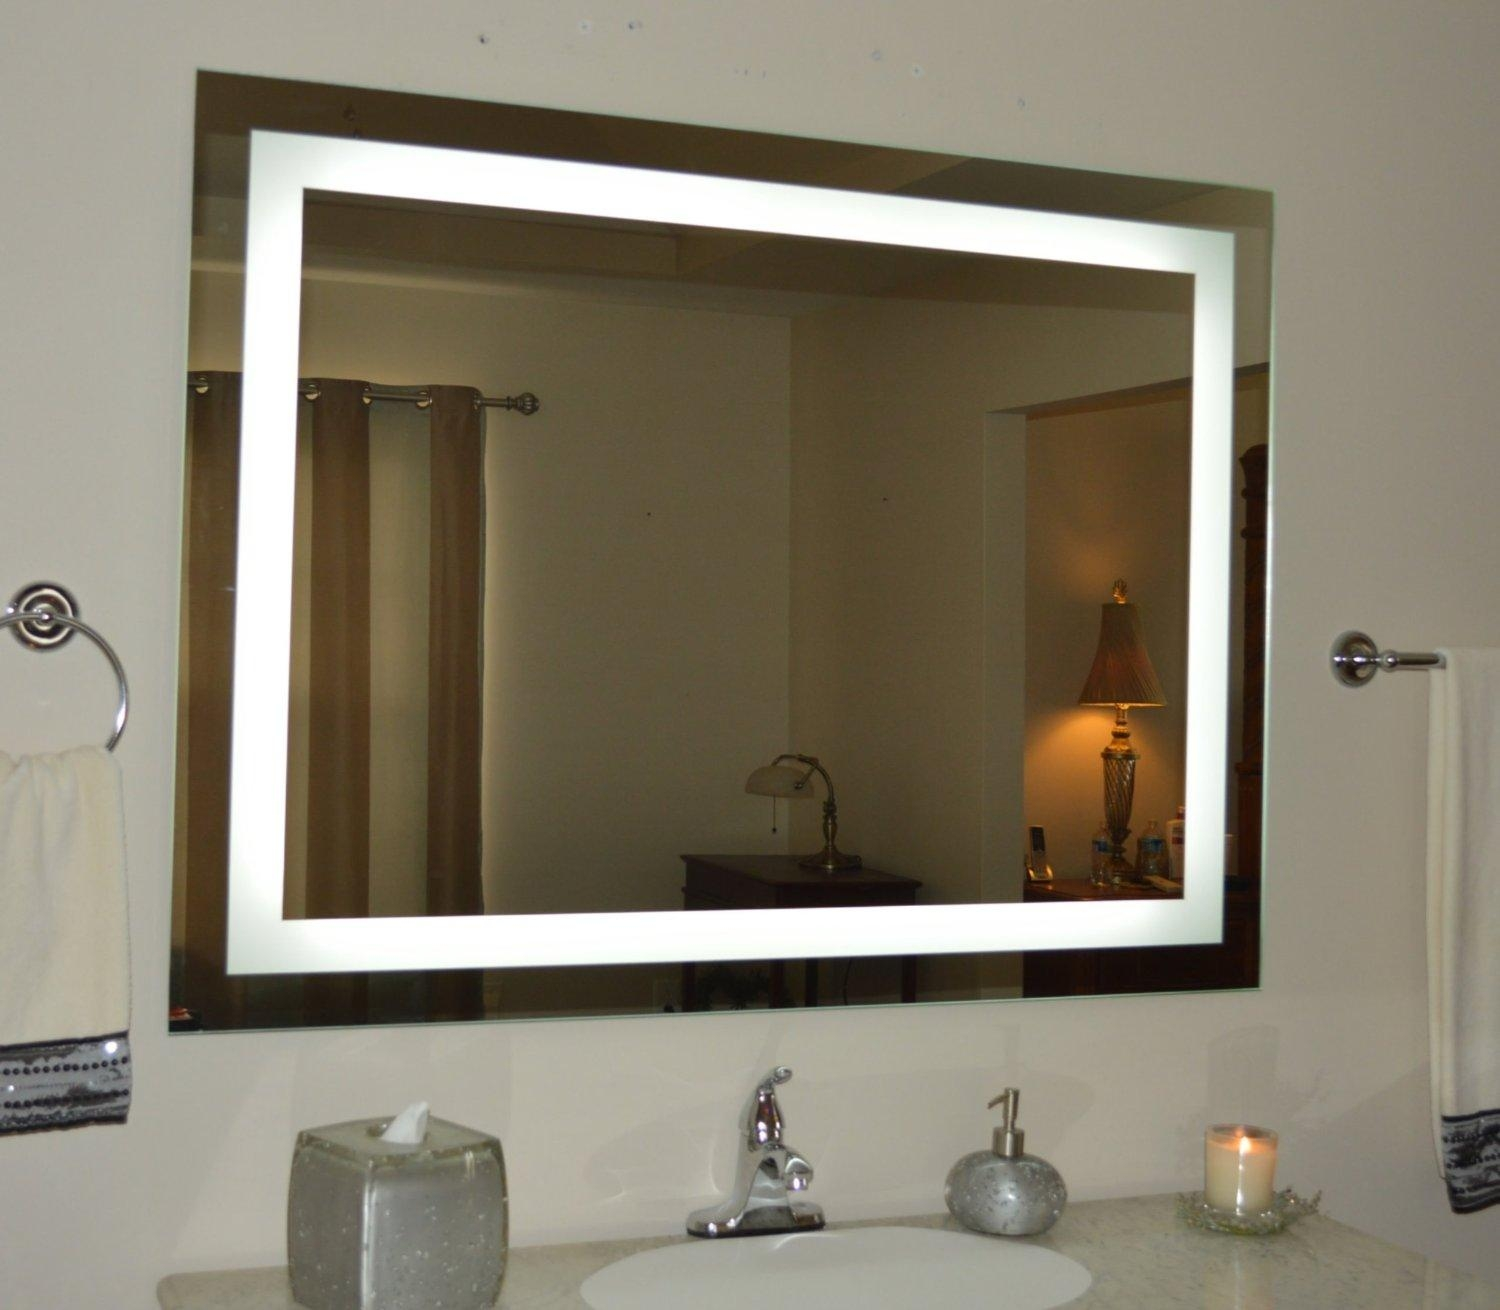 Buy Lighted Bathroom Vanity Mirrors Online Throughout Wall Mounted Lighted Makeup Mirrors (Image 5 of 20)